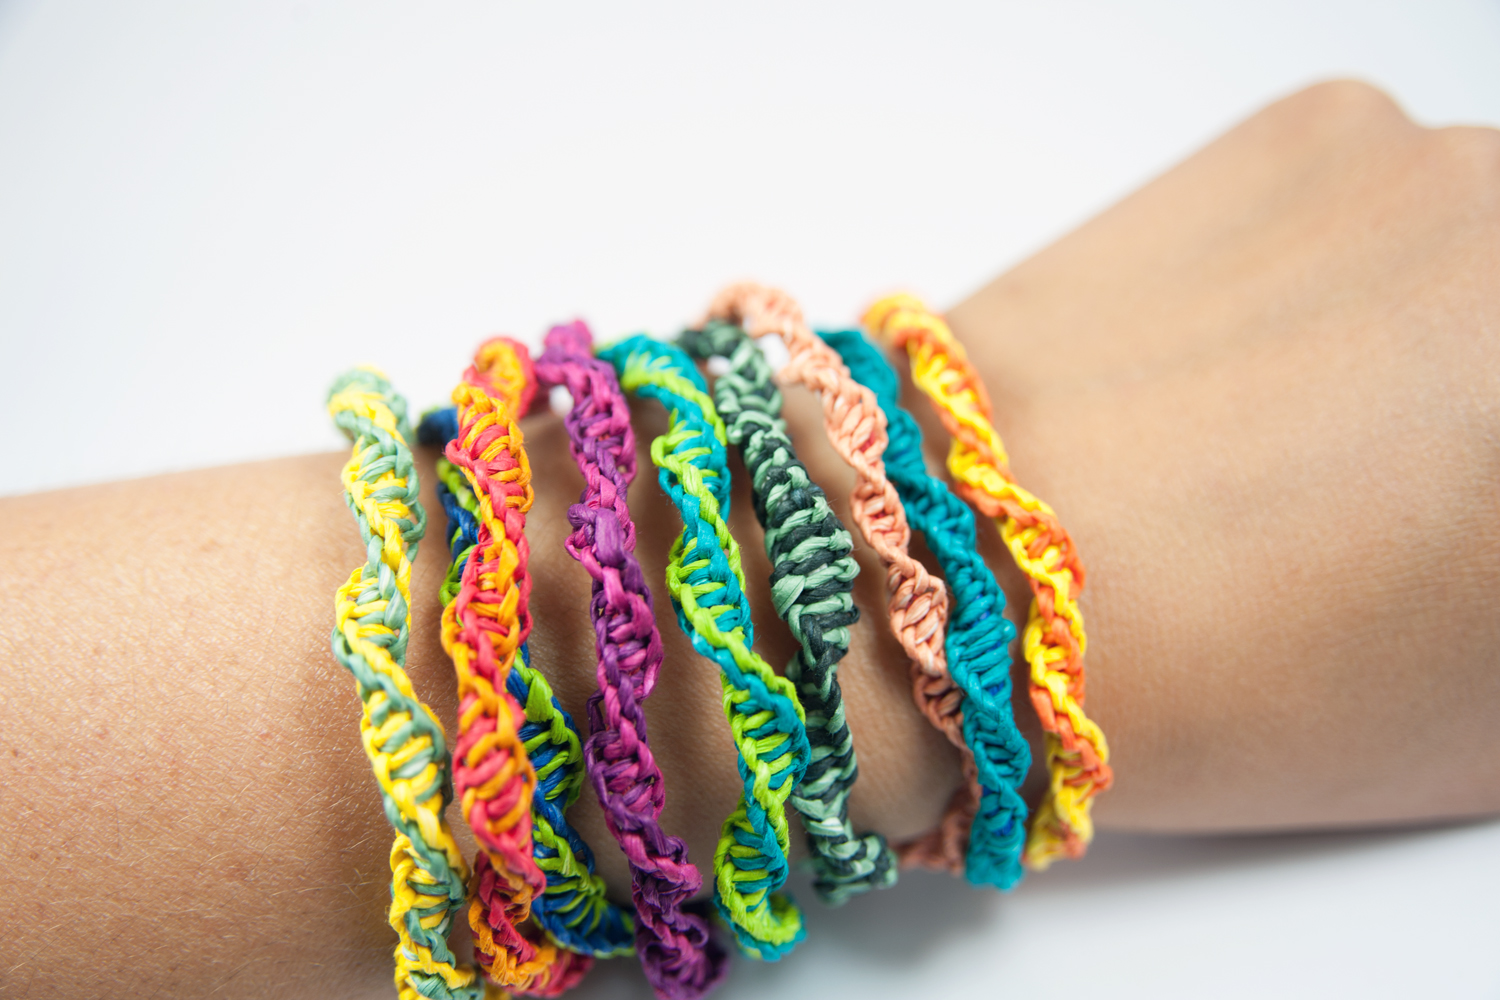 PaperPhine: Paperyarn DIY Kit - Friendship Bracelets - Macrame - DIY, Craft, Paper Jewelry